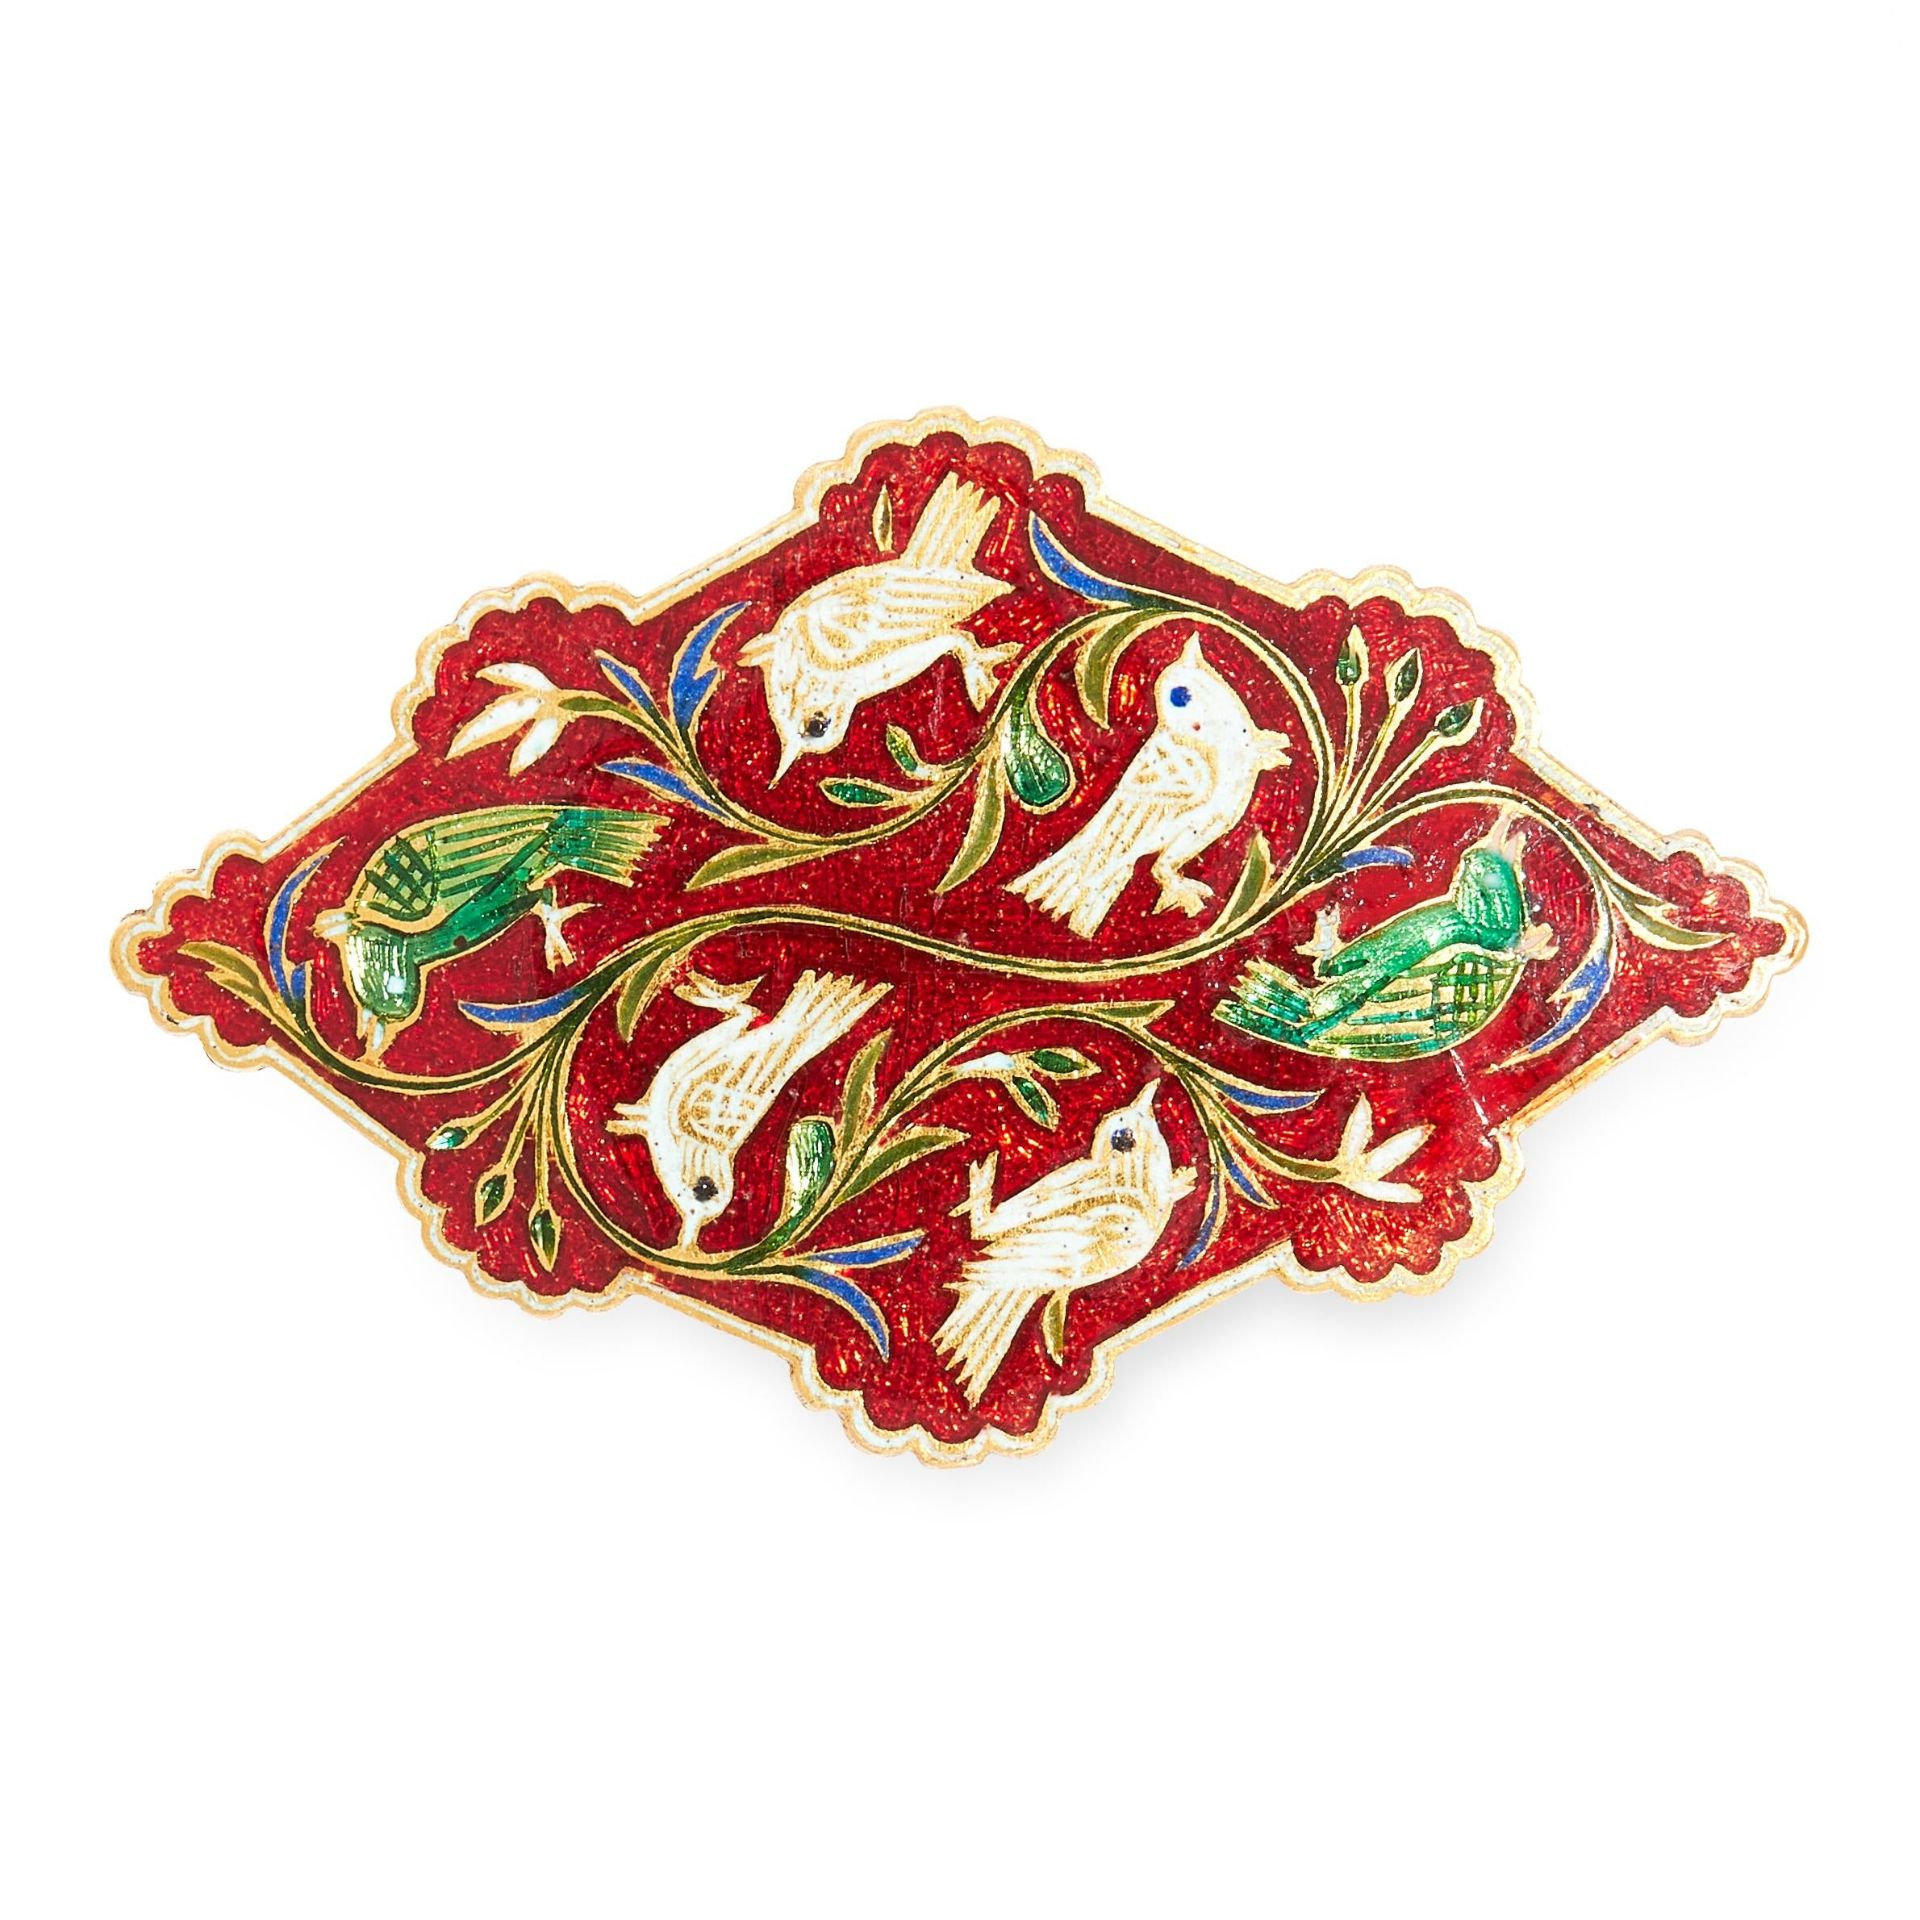 AN ANTIQUE INDIAN ENAMEL BROOCH the stylised design featuring birds among foliage relieved in white,